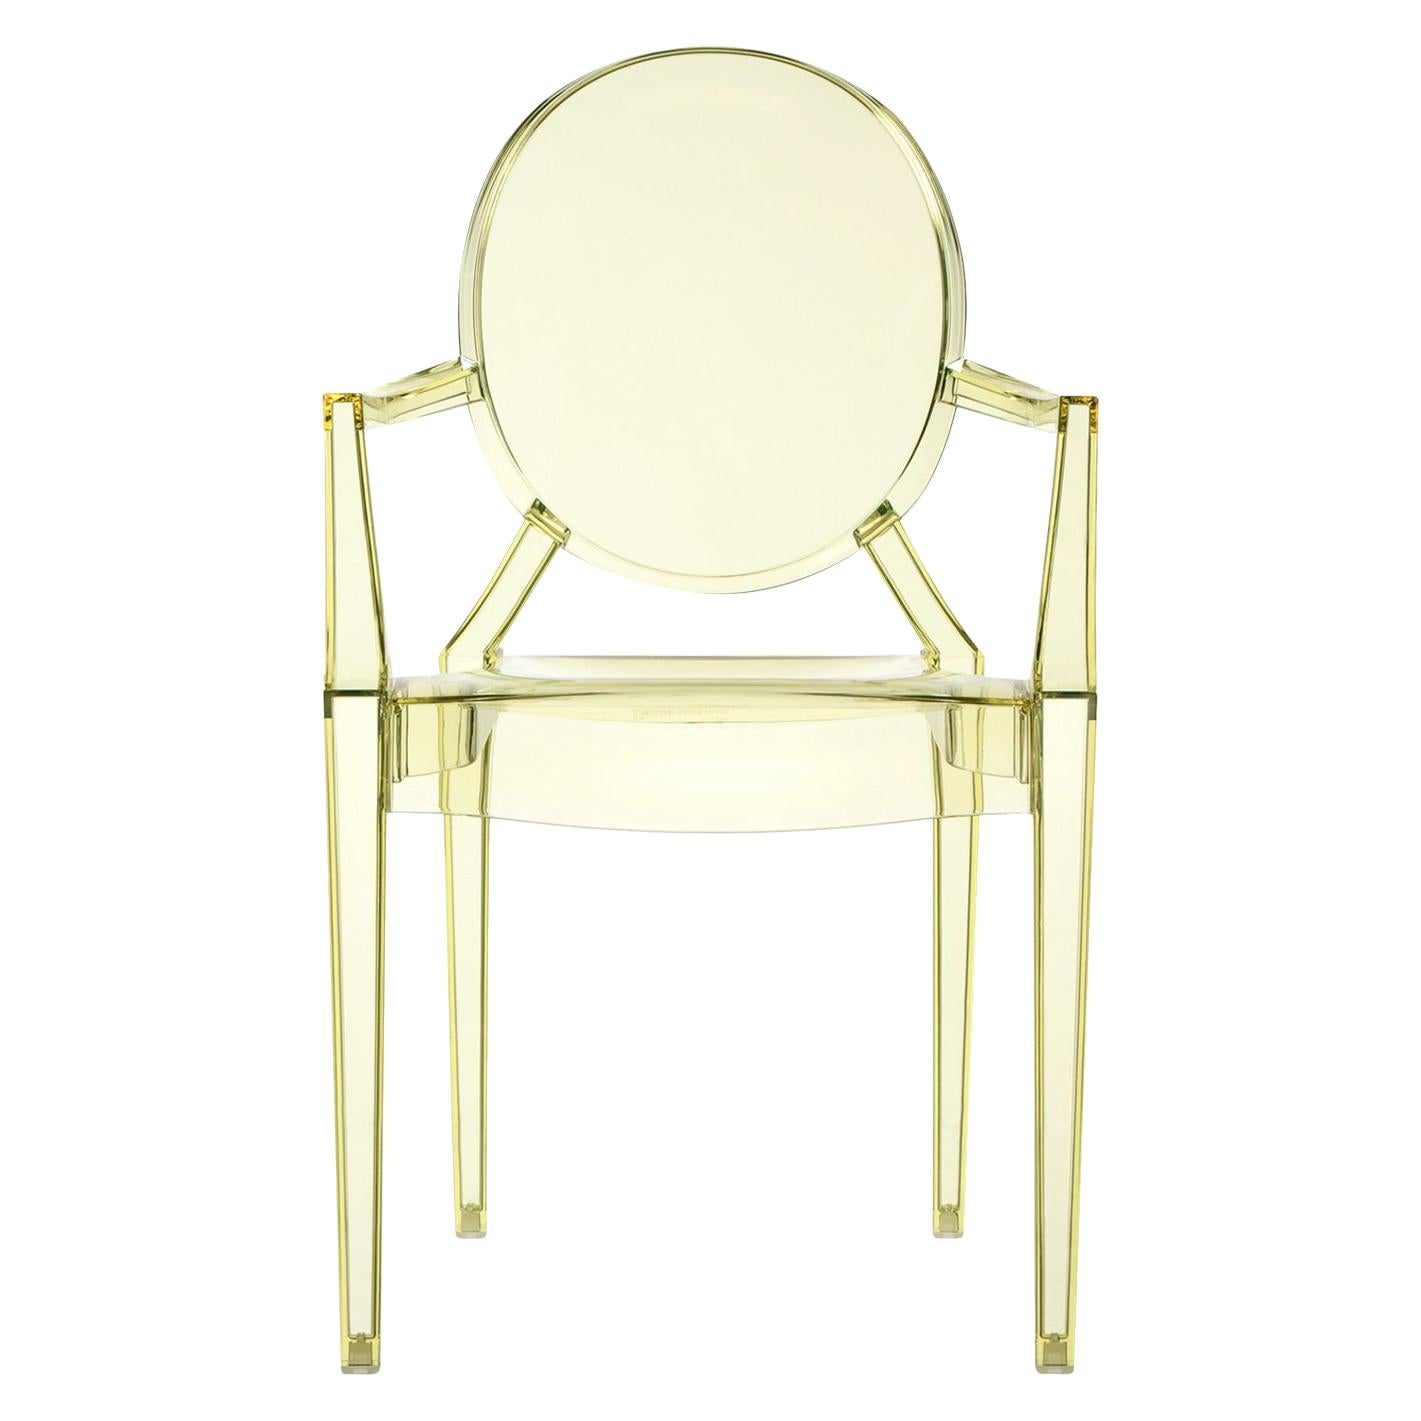 Set of 2 Kartell Louis Ghost Armchairs in Straw Yellow by Philippe Starck